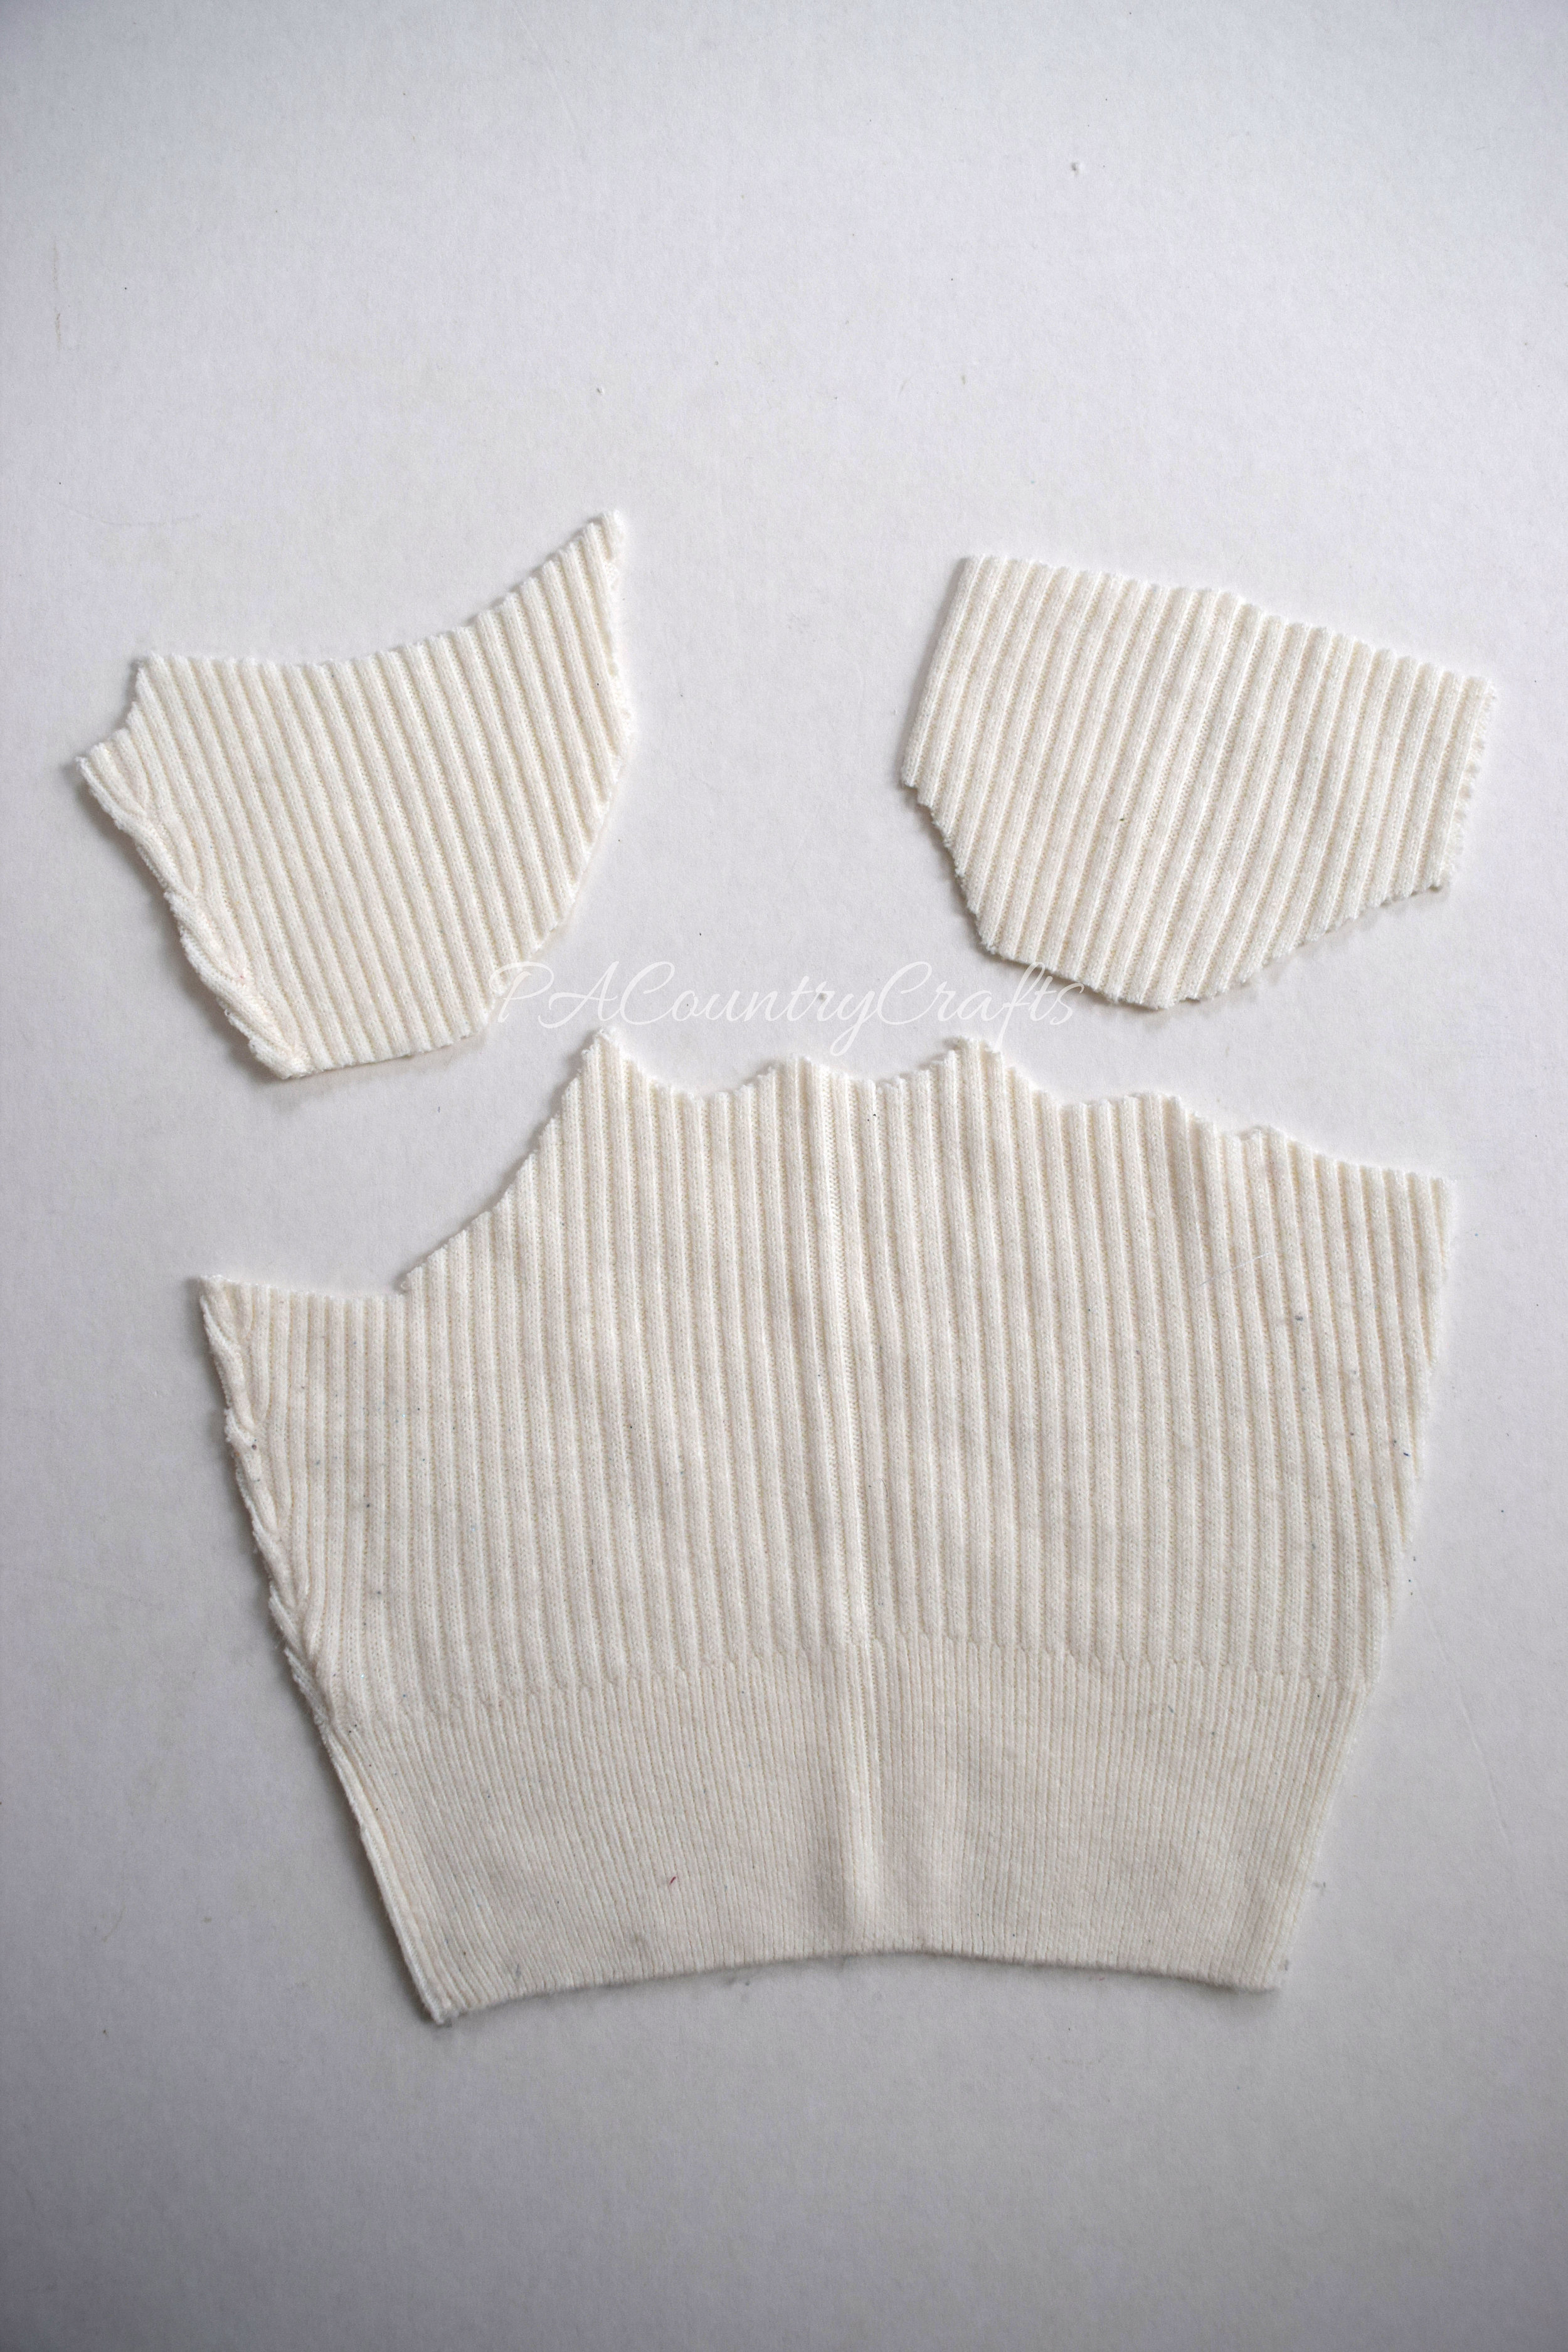 sweater scraps used to make handwarmers